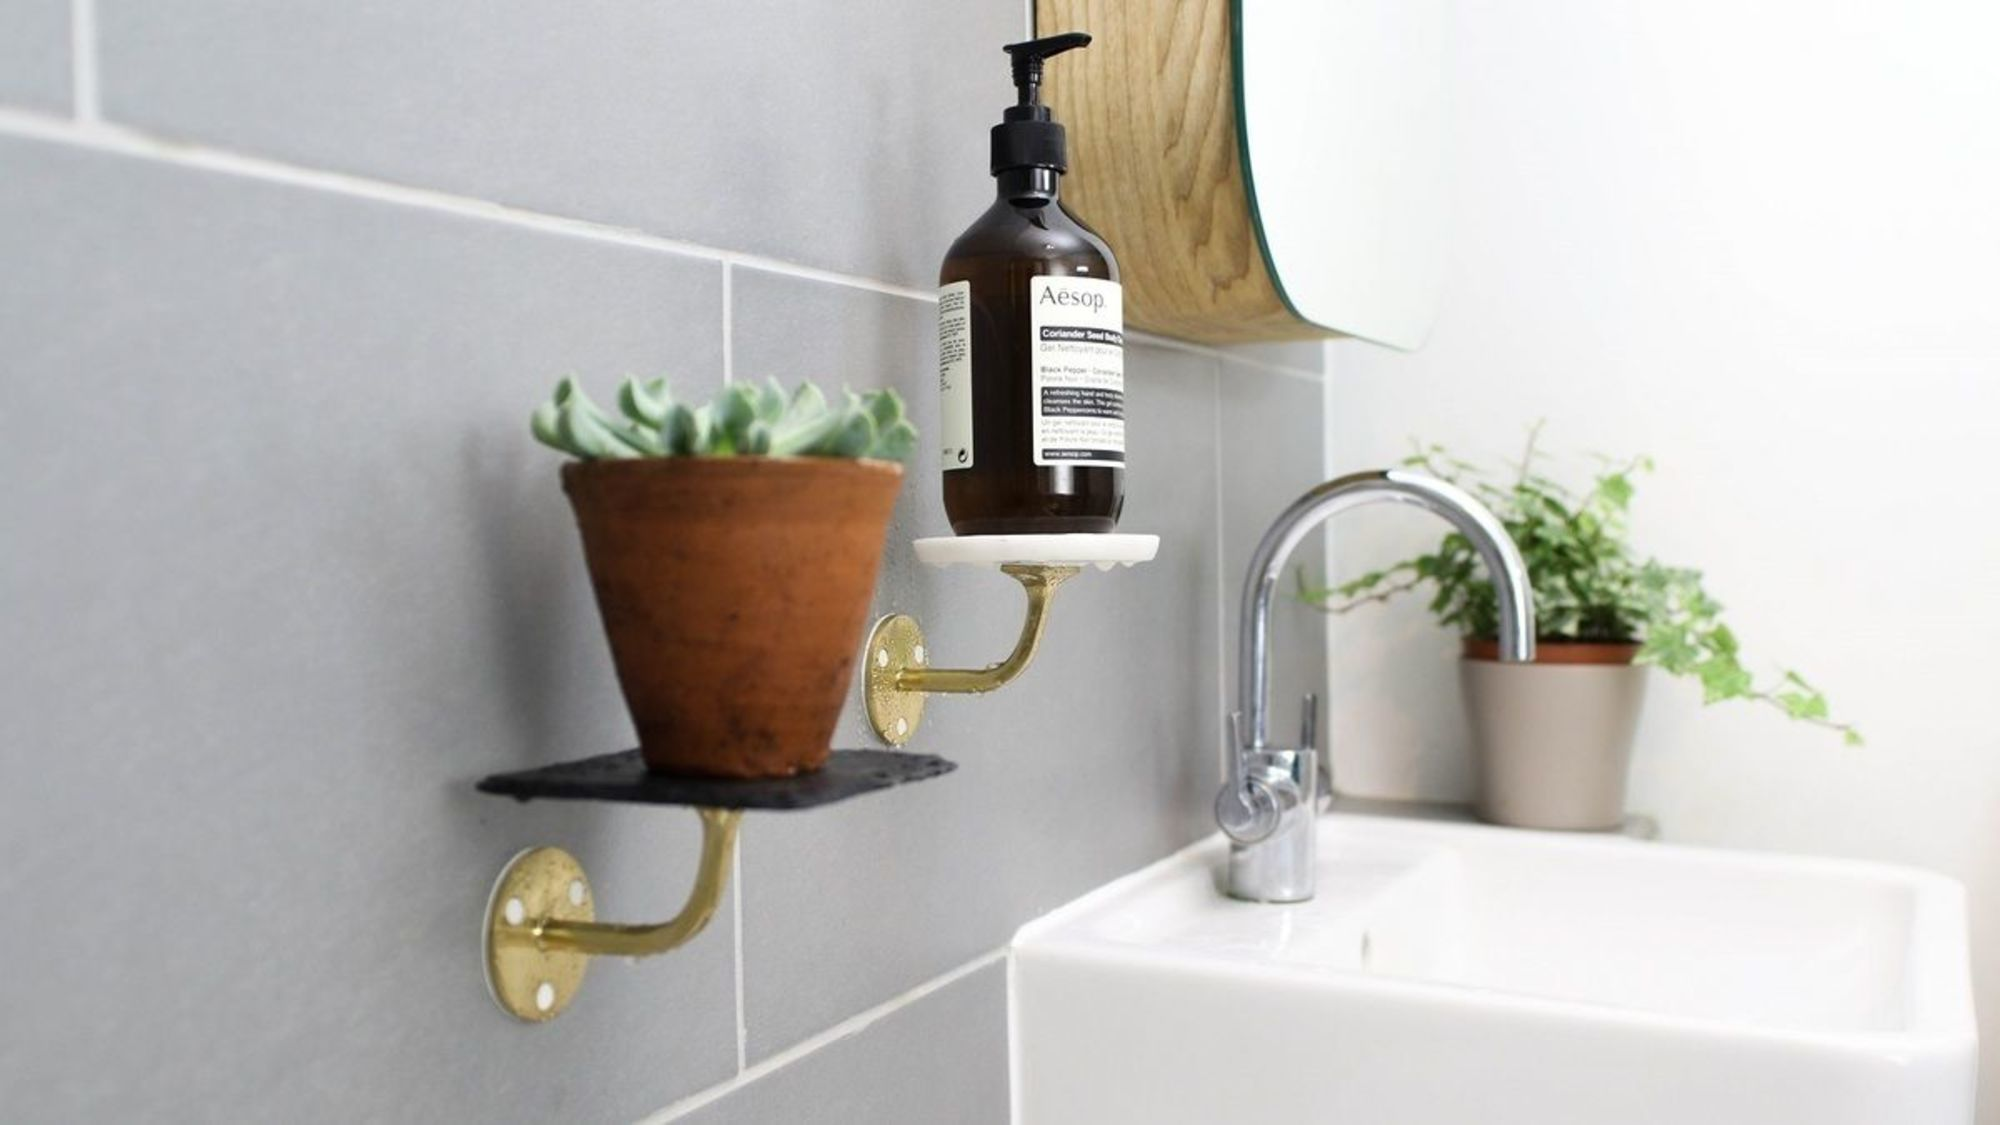 Charming Ceramicsand Used A Metal Handrail Sugru Is This Project Because It Bonds Well Marble Slate Coasters A How To Create Bathroom Shelves Without Drilling Sugru bathroom Wall Bathroom Shelves